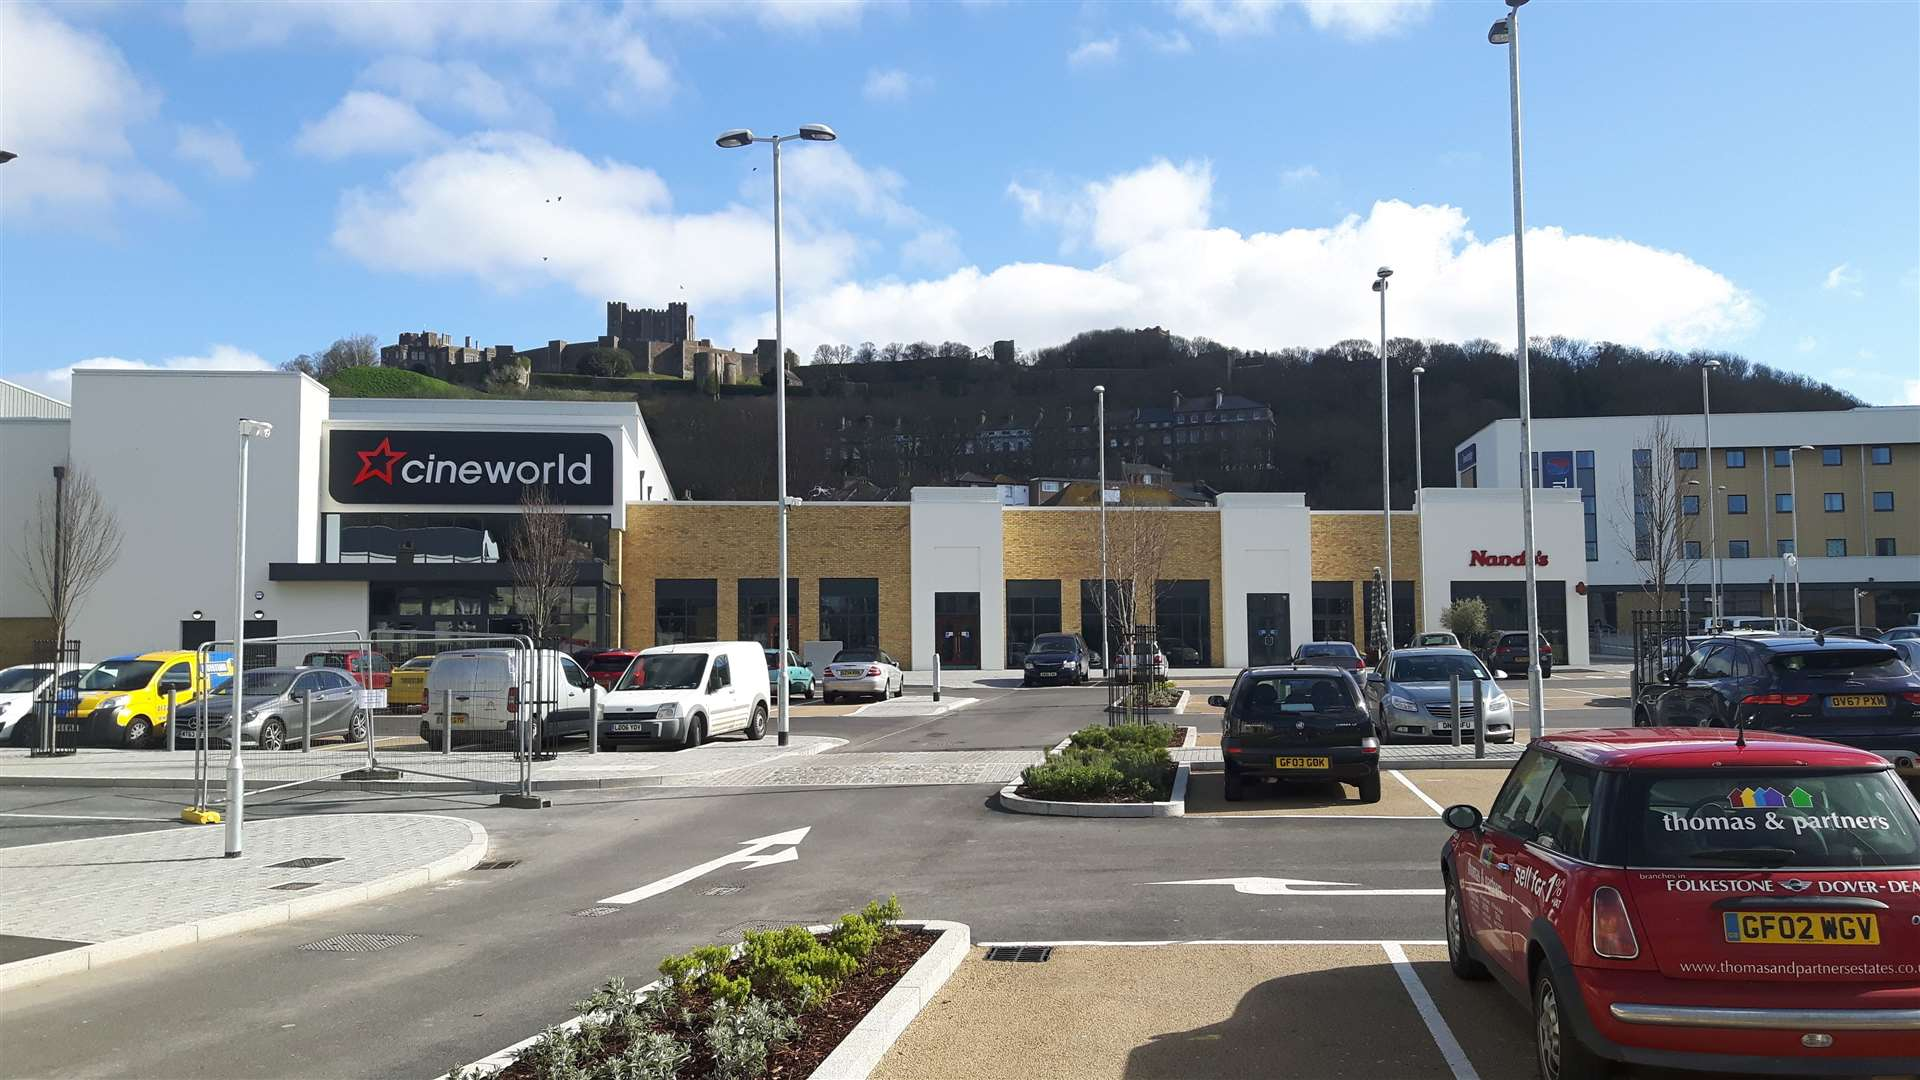 St James' with Cineworld, the first business to open there, and Dover Castle in the background. Picture: Sam Lennon